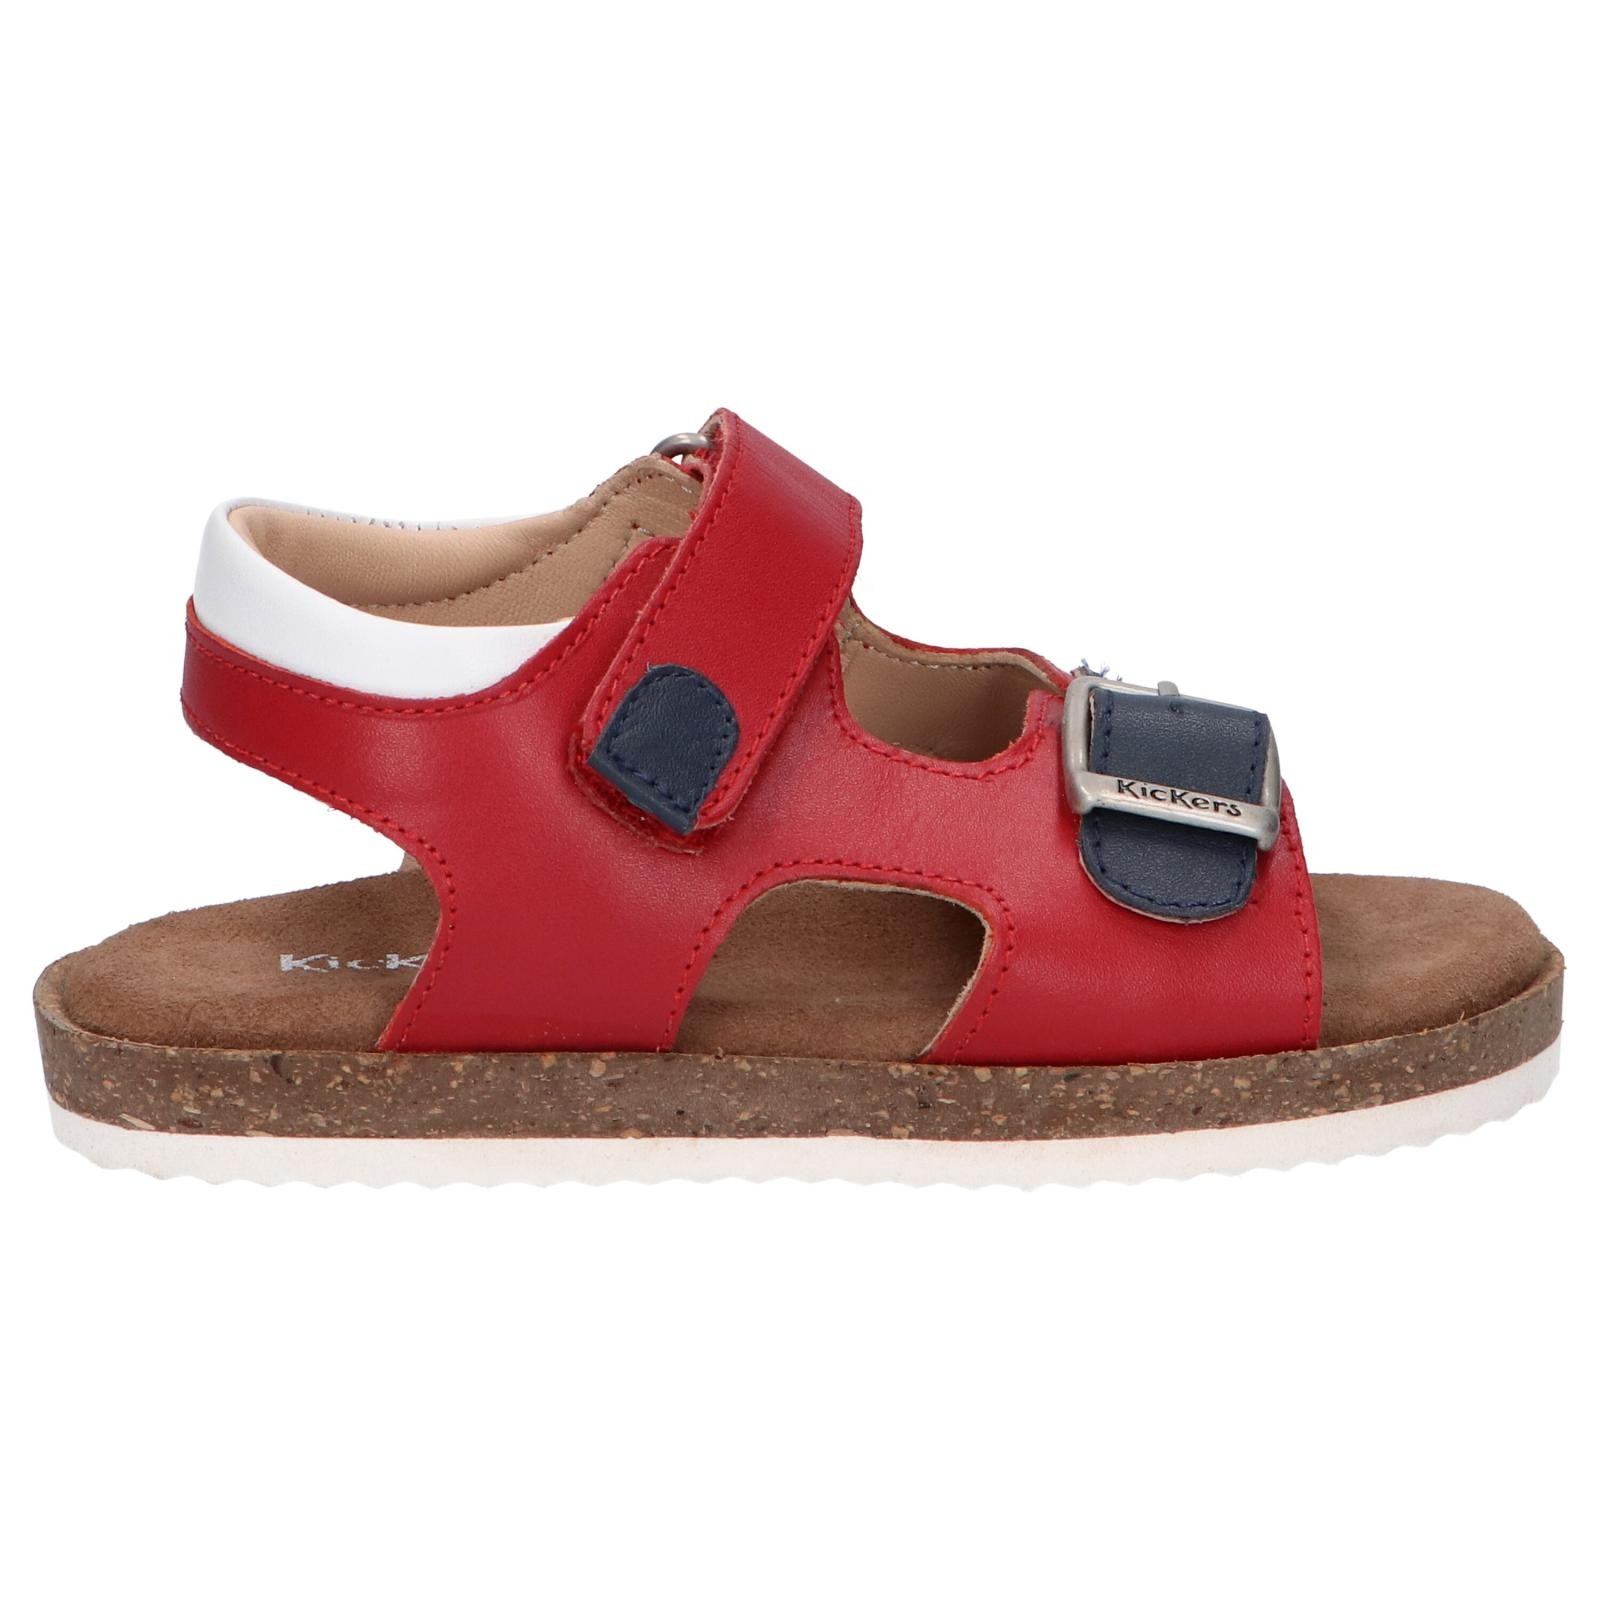 Women and Girl and Boy Sandals KICKERS 694917-30 FUNKYO 41 ROUGE MARINE BLANC